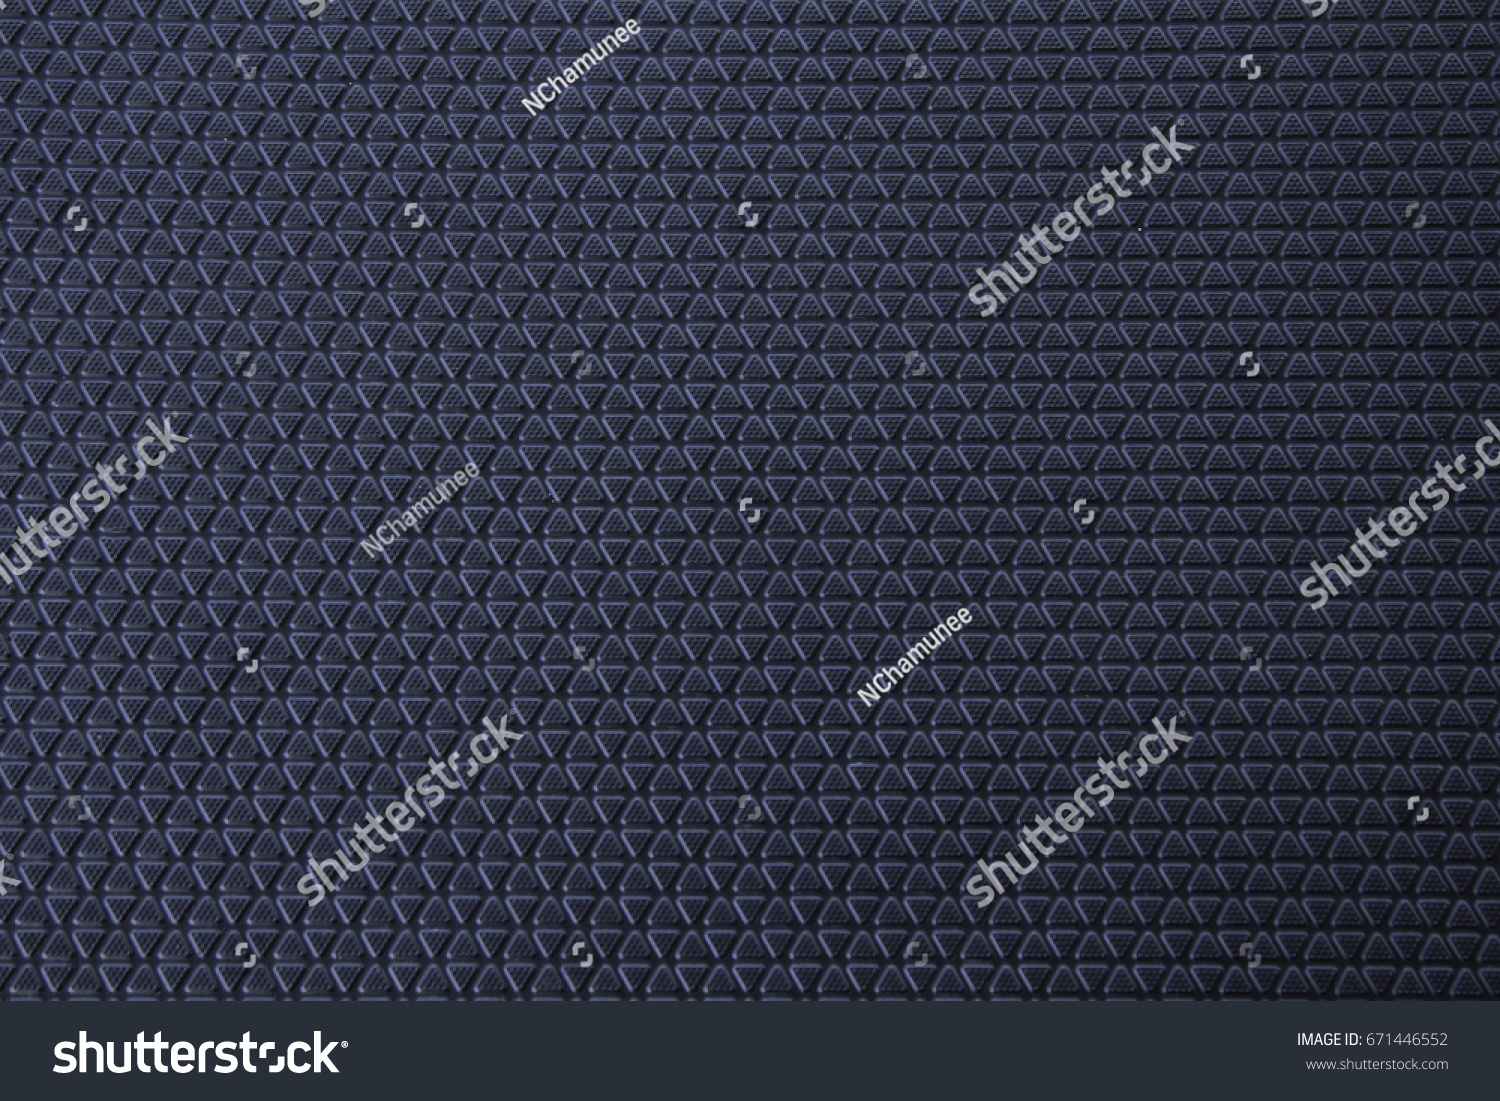 Abstract Gym floor sheet made by black rubber background for exercise workout in gym fitness. Healthy, Lifestyle , Texture and Pattern for Fitness.